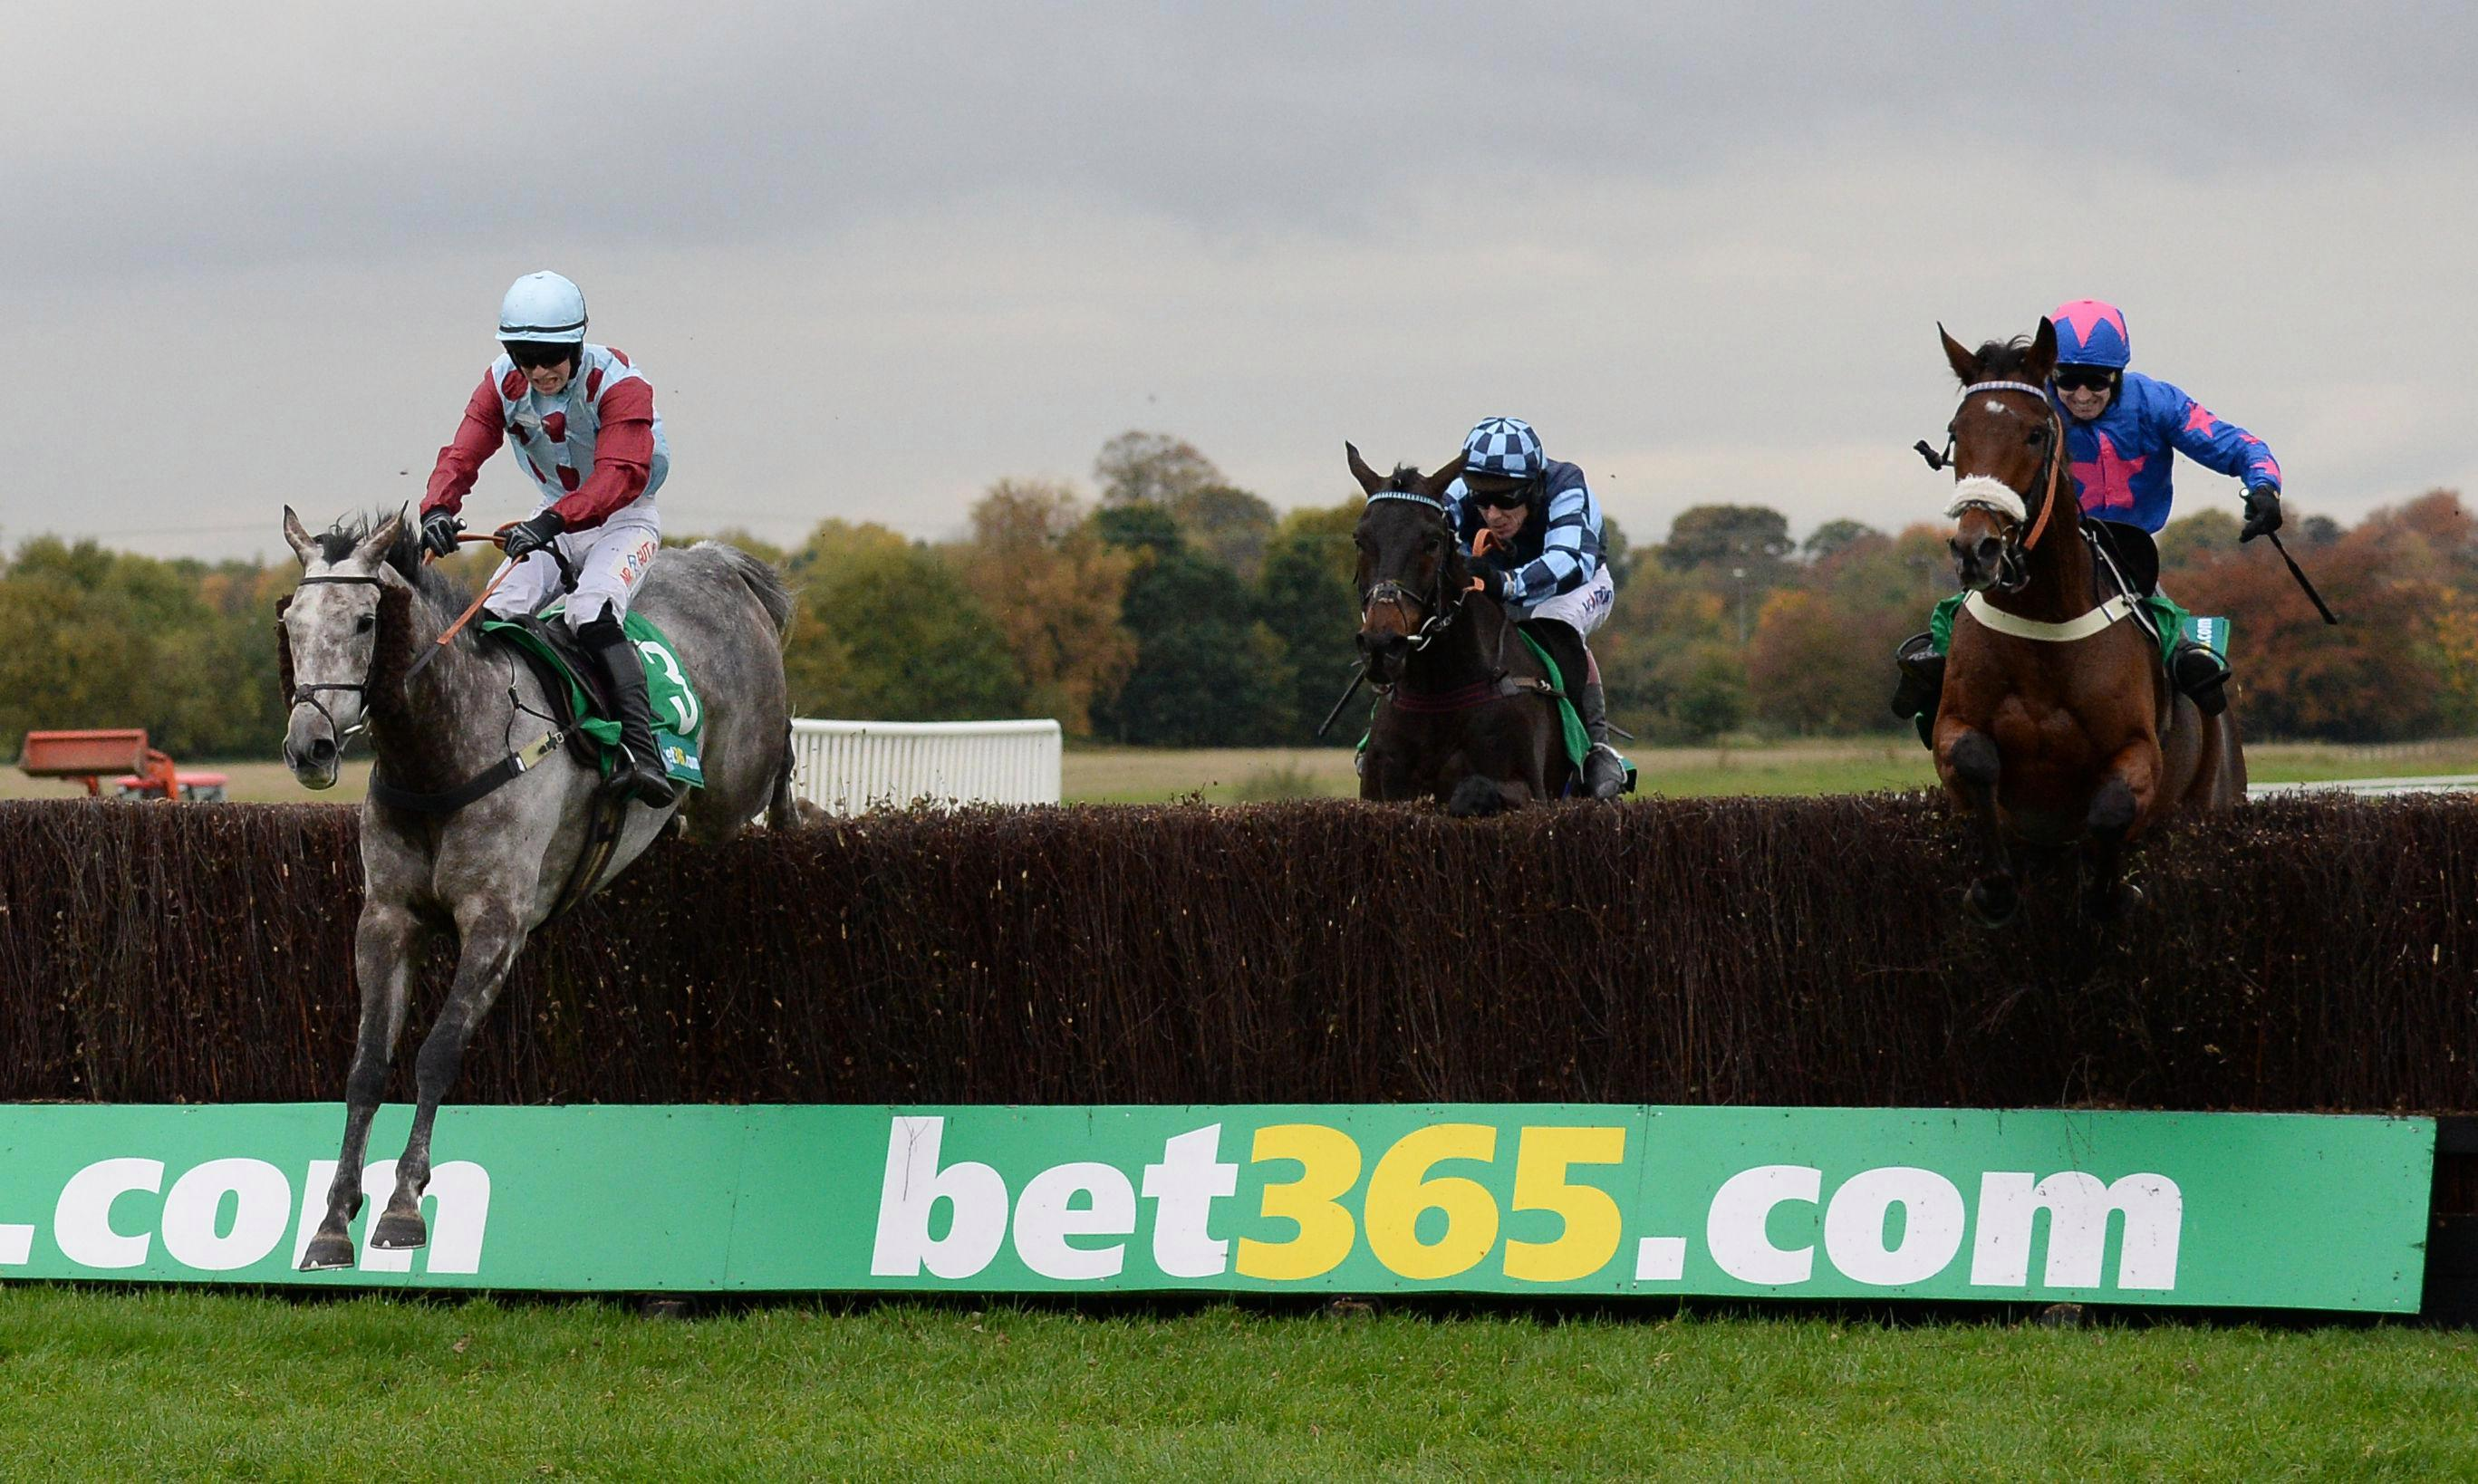 Horse racing tips: Newcastle and Wetherby – Templegate's betting preview for the racing this Tuesday, March 20 – The Sun